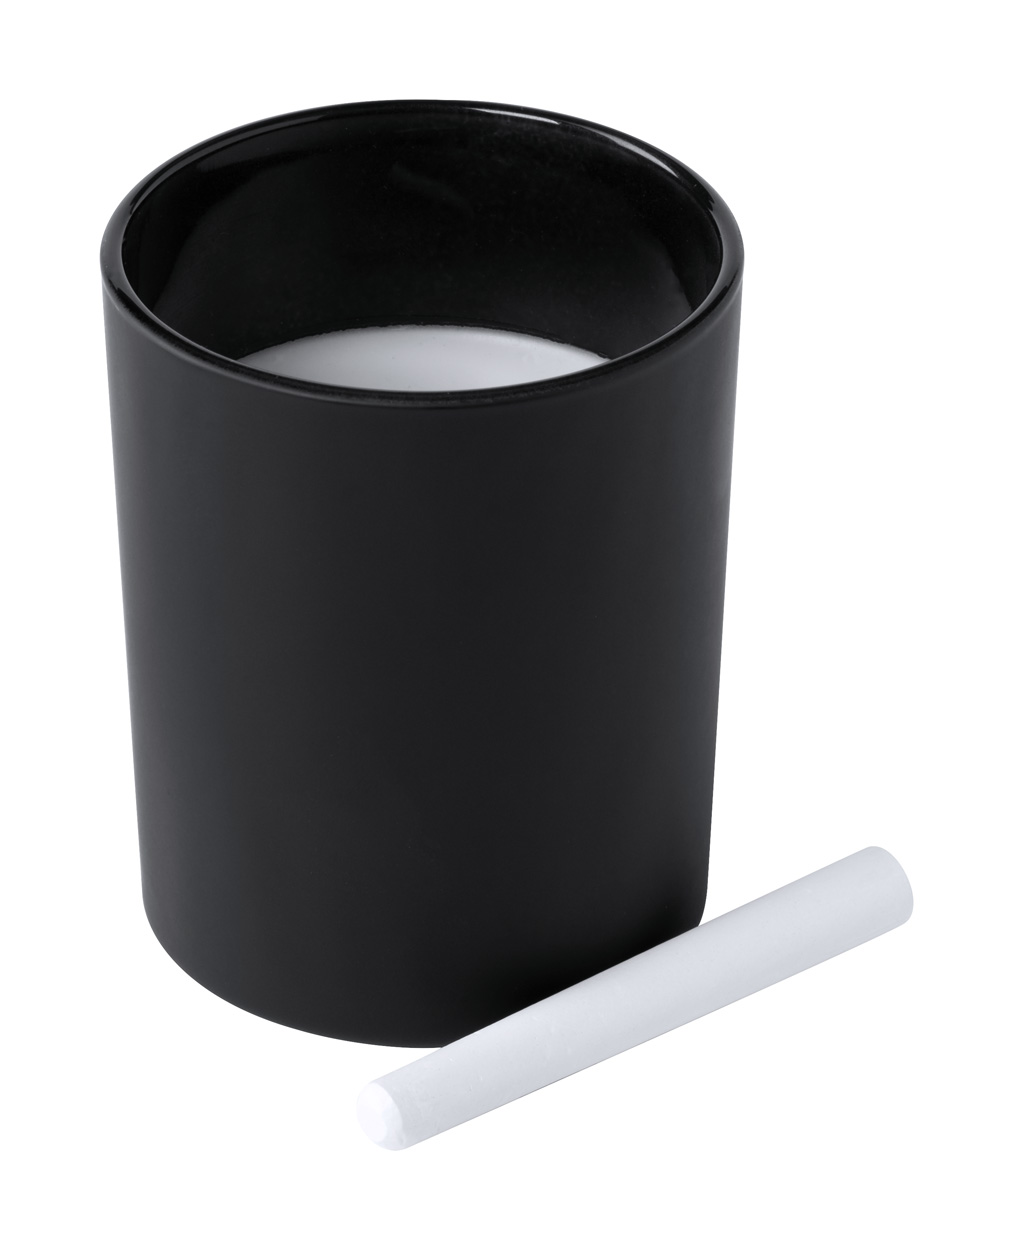 Temul chalk candle